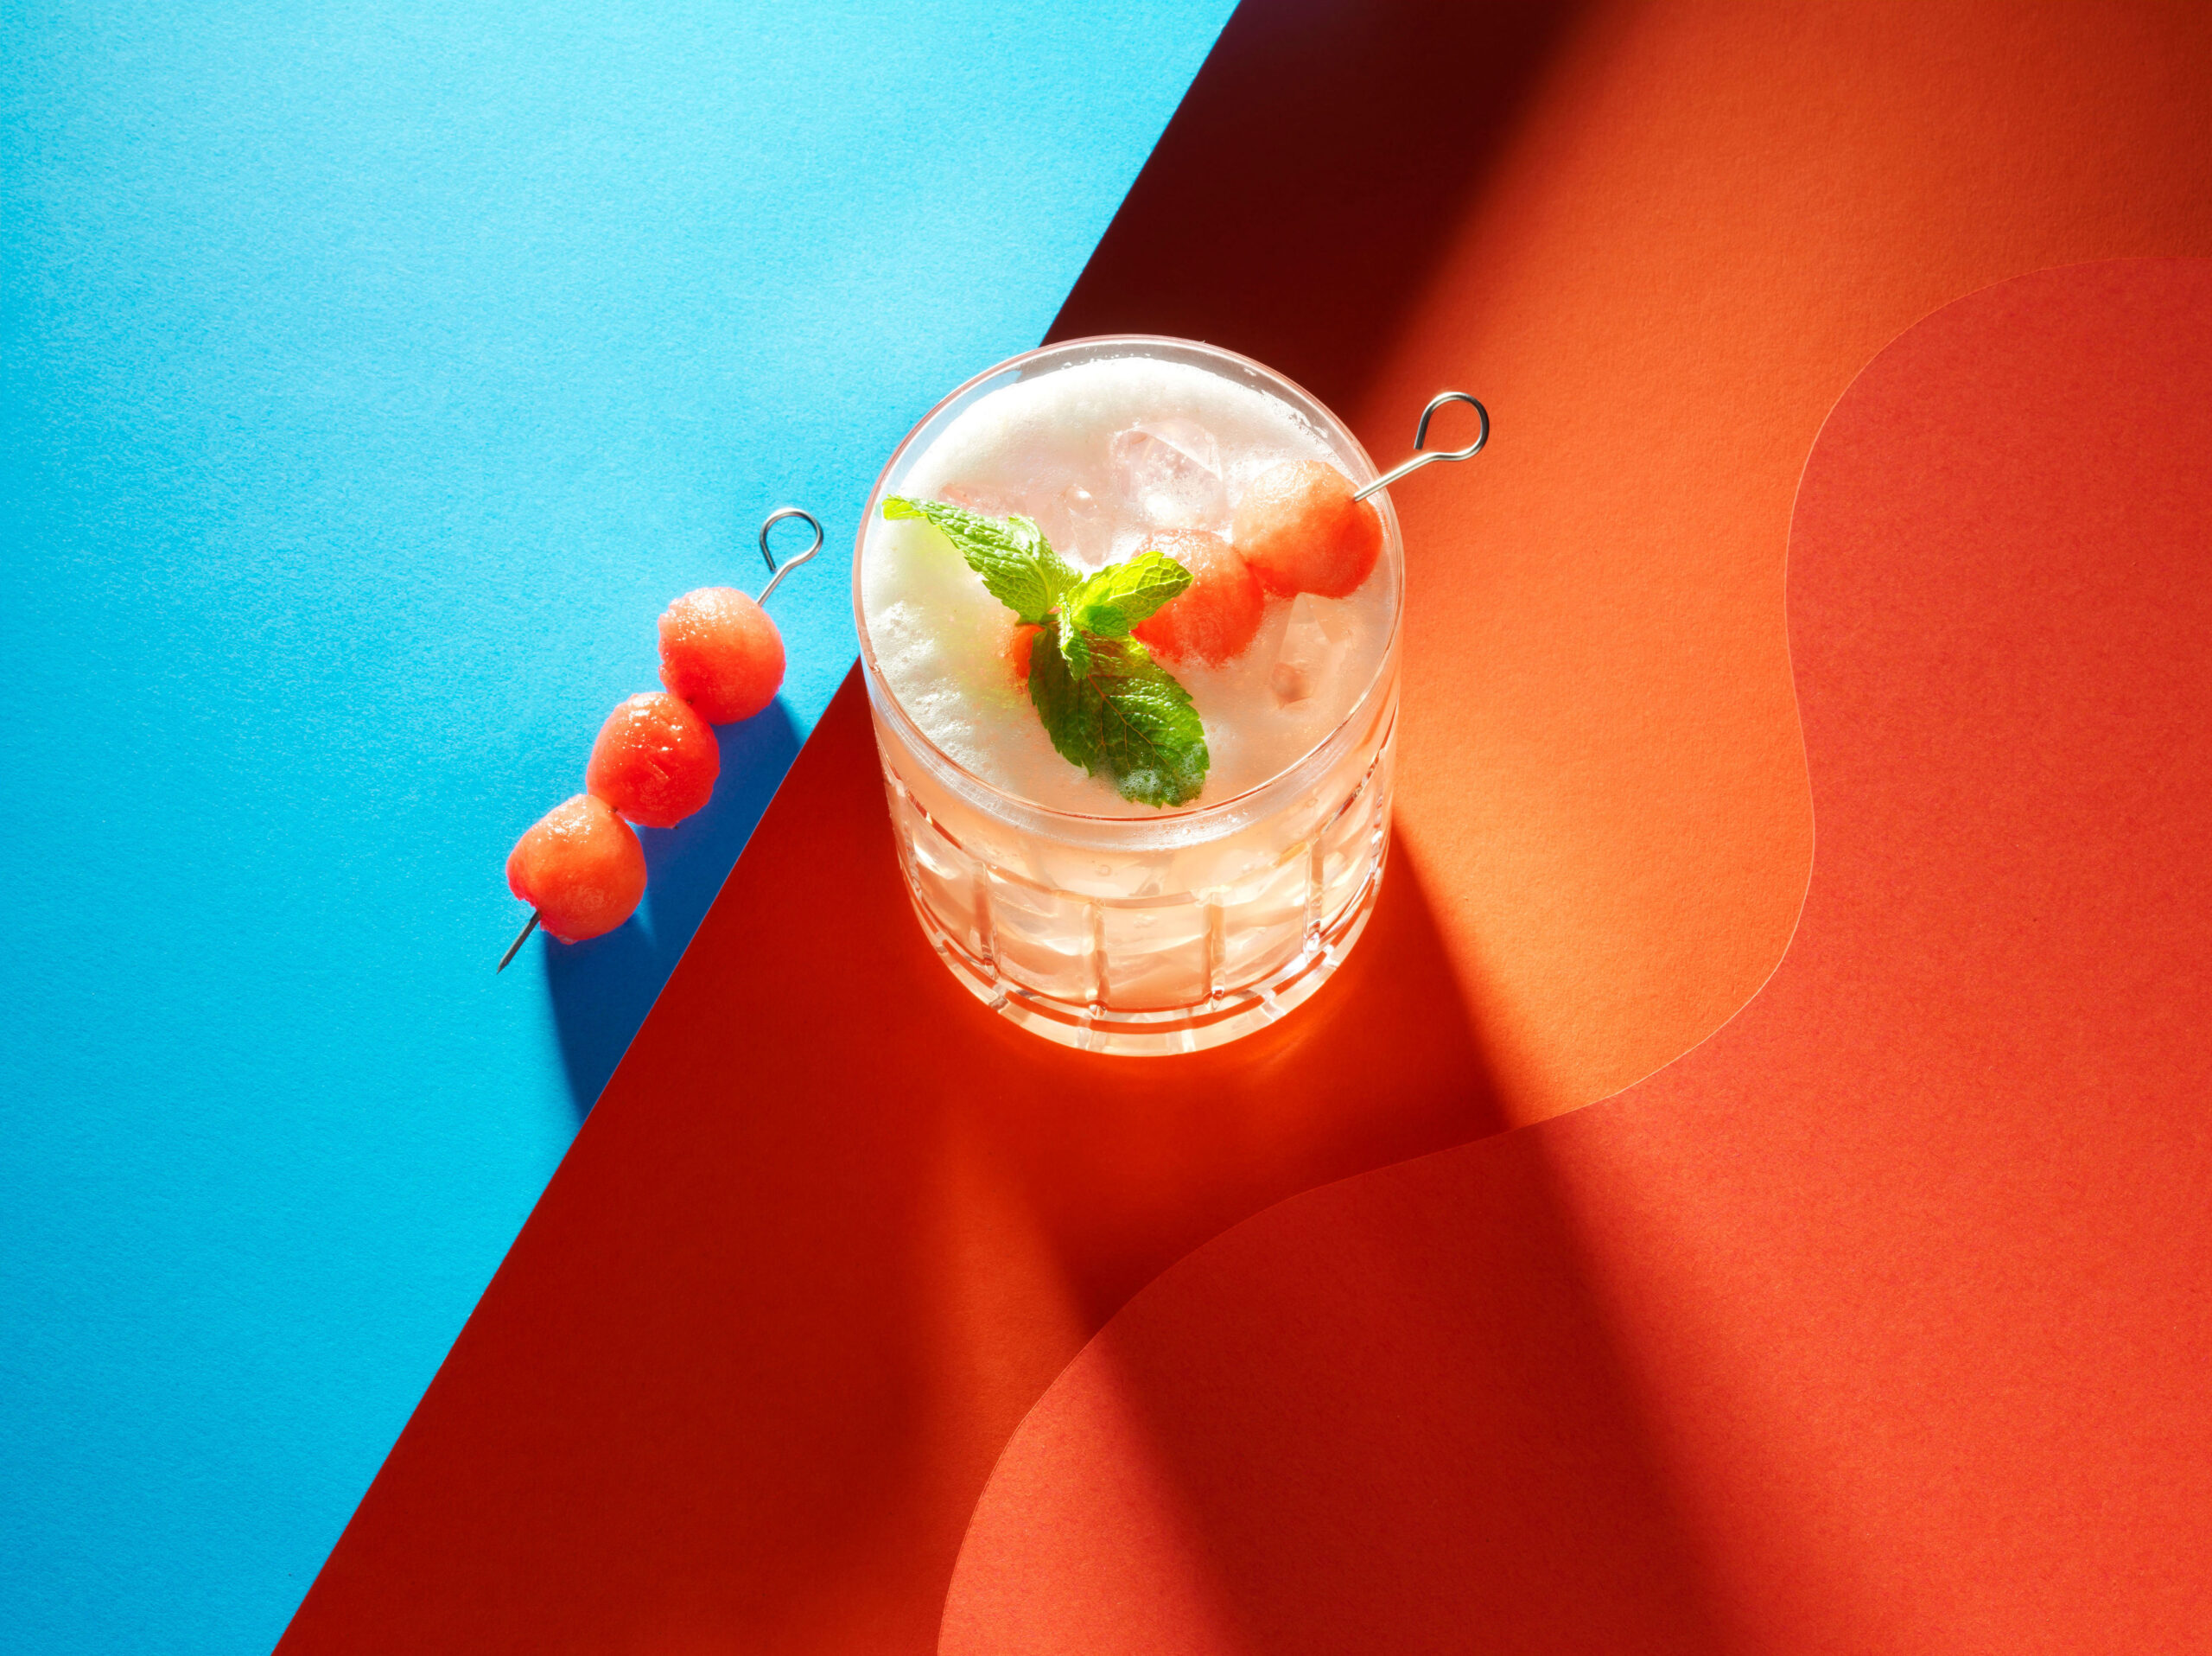 Creative food photo of SmartWhip recipe watermelon cocktail made by STUDIO_M Amsterdam